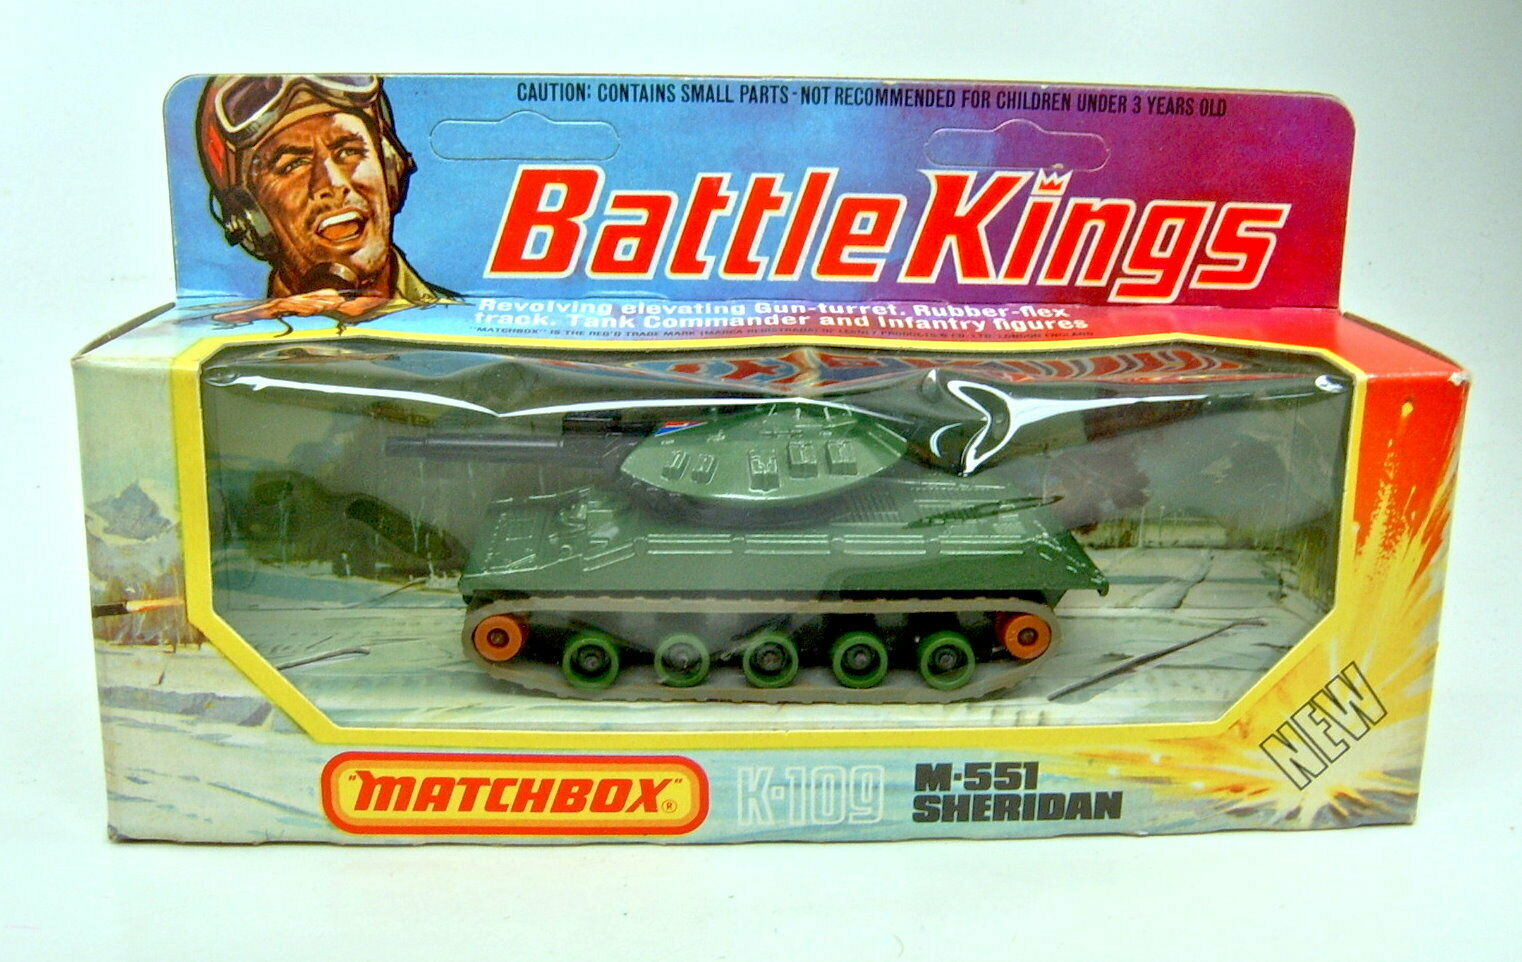 Matchbox BATTLE KING K-109 M551 Sheridan Green Metallic Top in Box